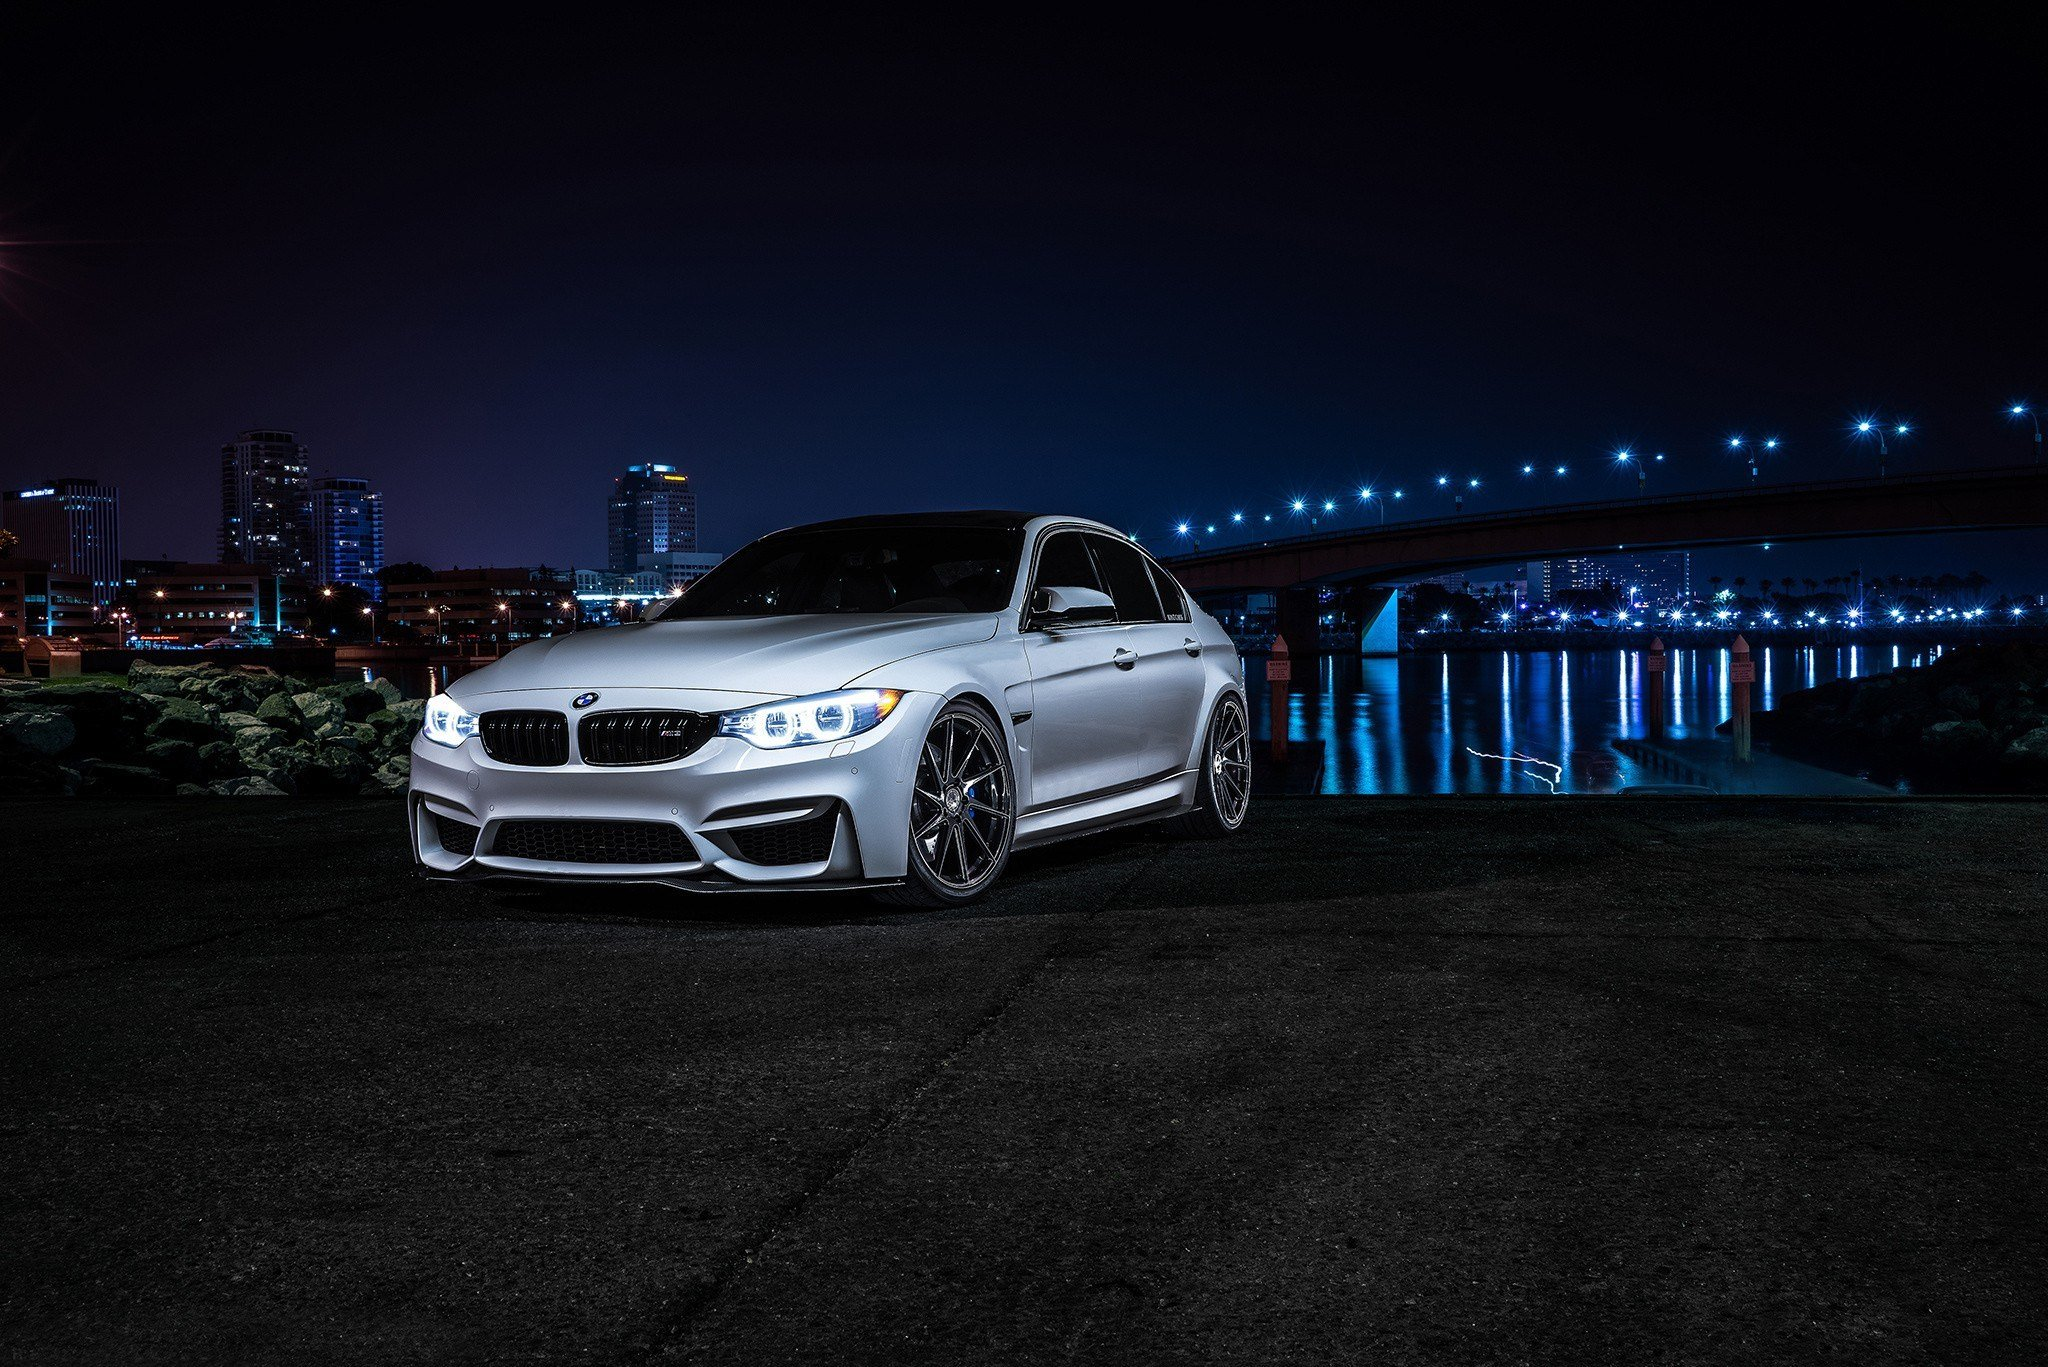 Latest Bmw Car Night Wallpapers Hd Desktop And Mobile Backgrounds Free Download